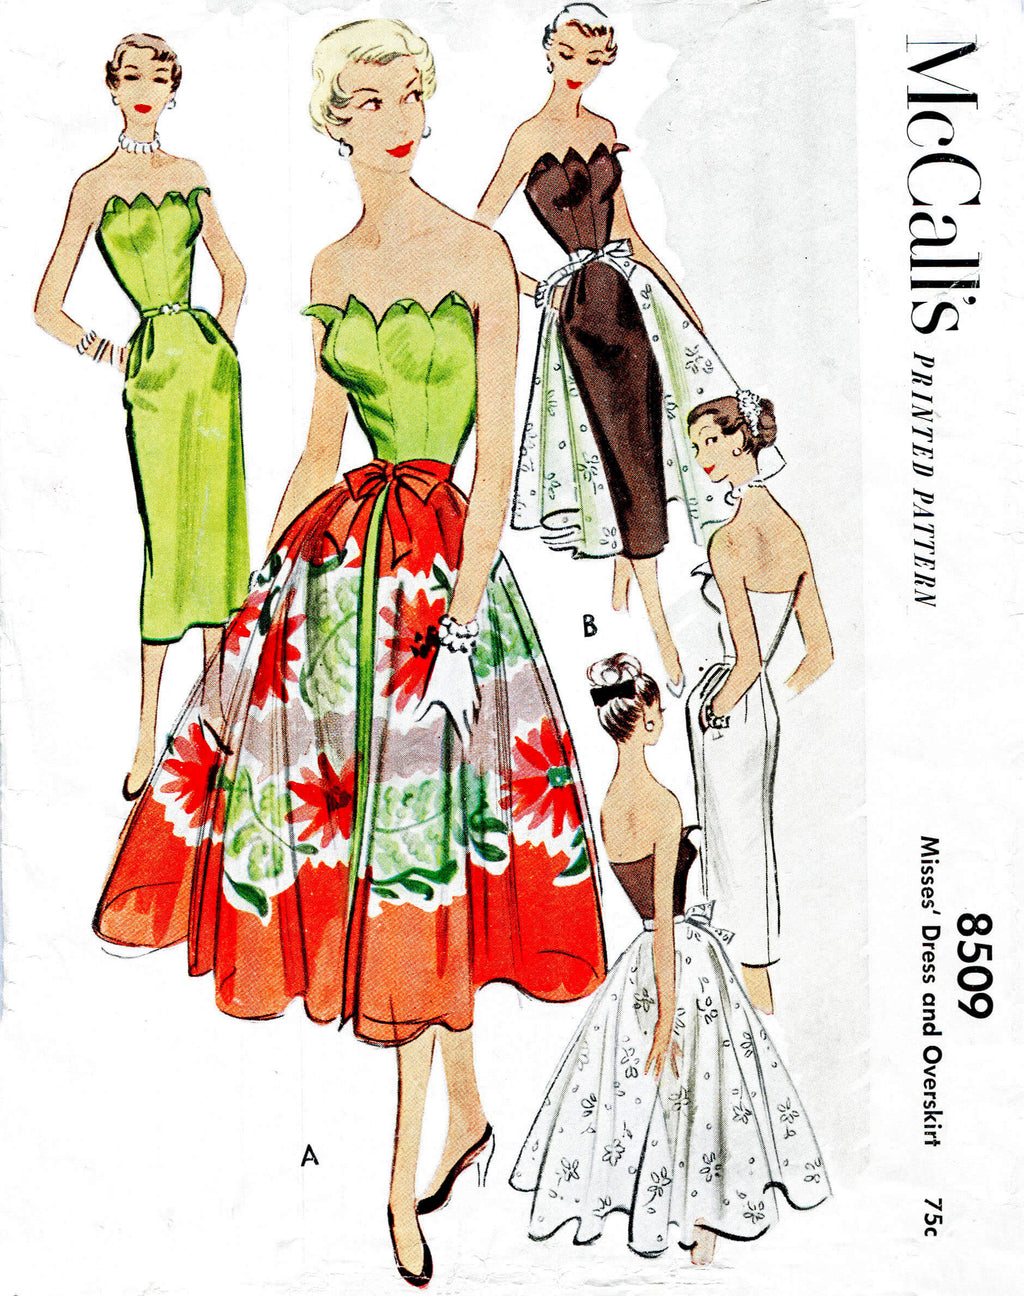 McCall's 8509 1950s 1951 cocktail evening dress full overskirt petal shaped bodice vintage sewing pattern reproduction